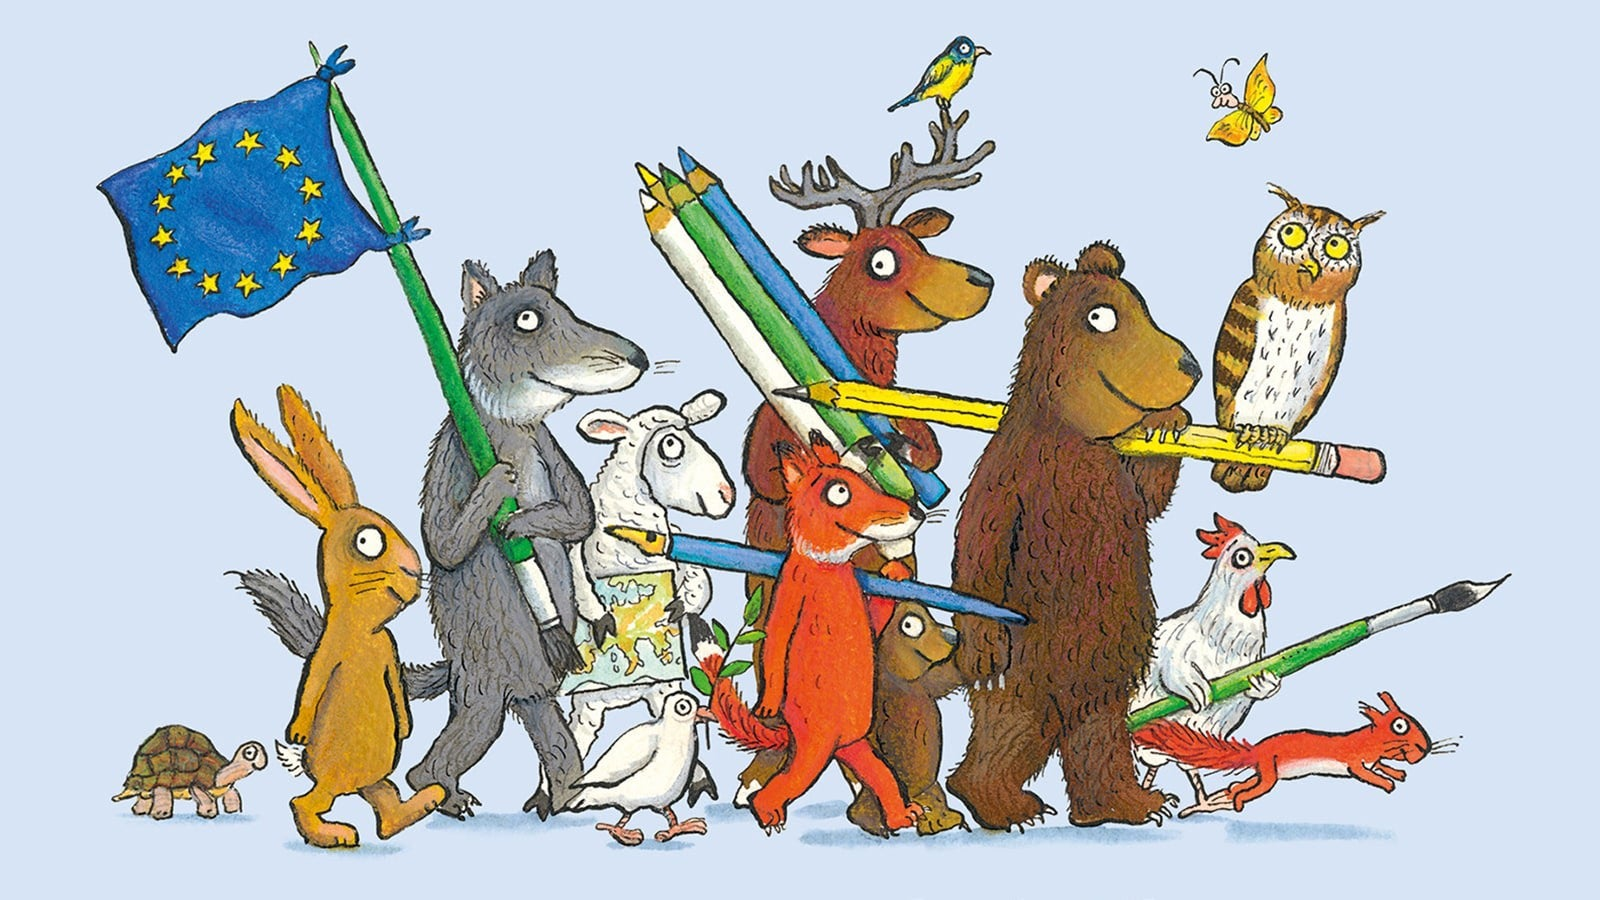 A variety of illustrated animal carrying an EU flag, pencils and paint brushes